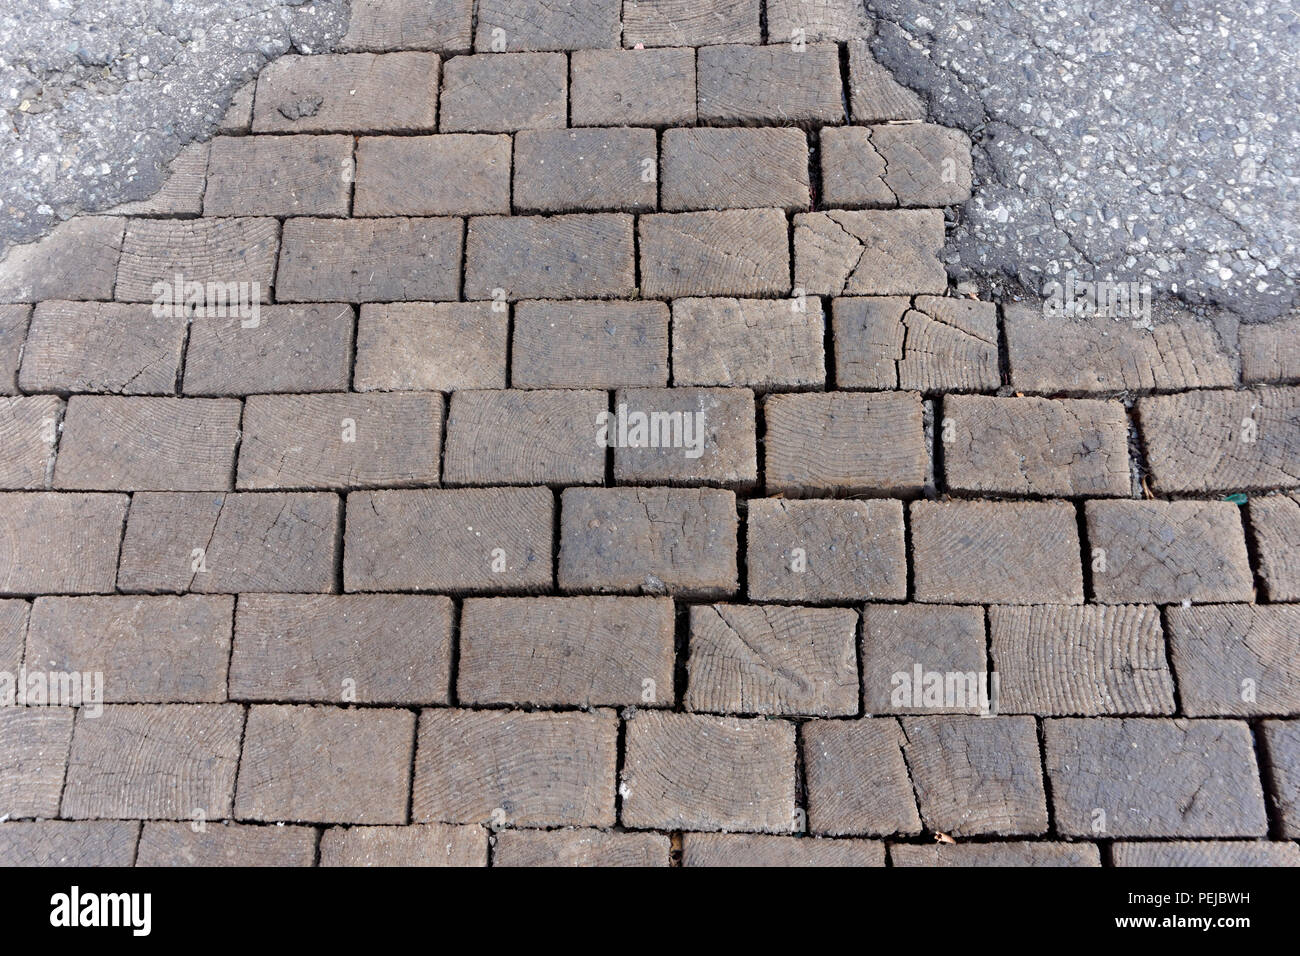 old-wooden-paving-blocks-on-a-street-in-